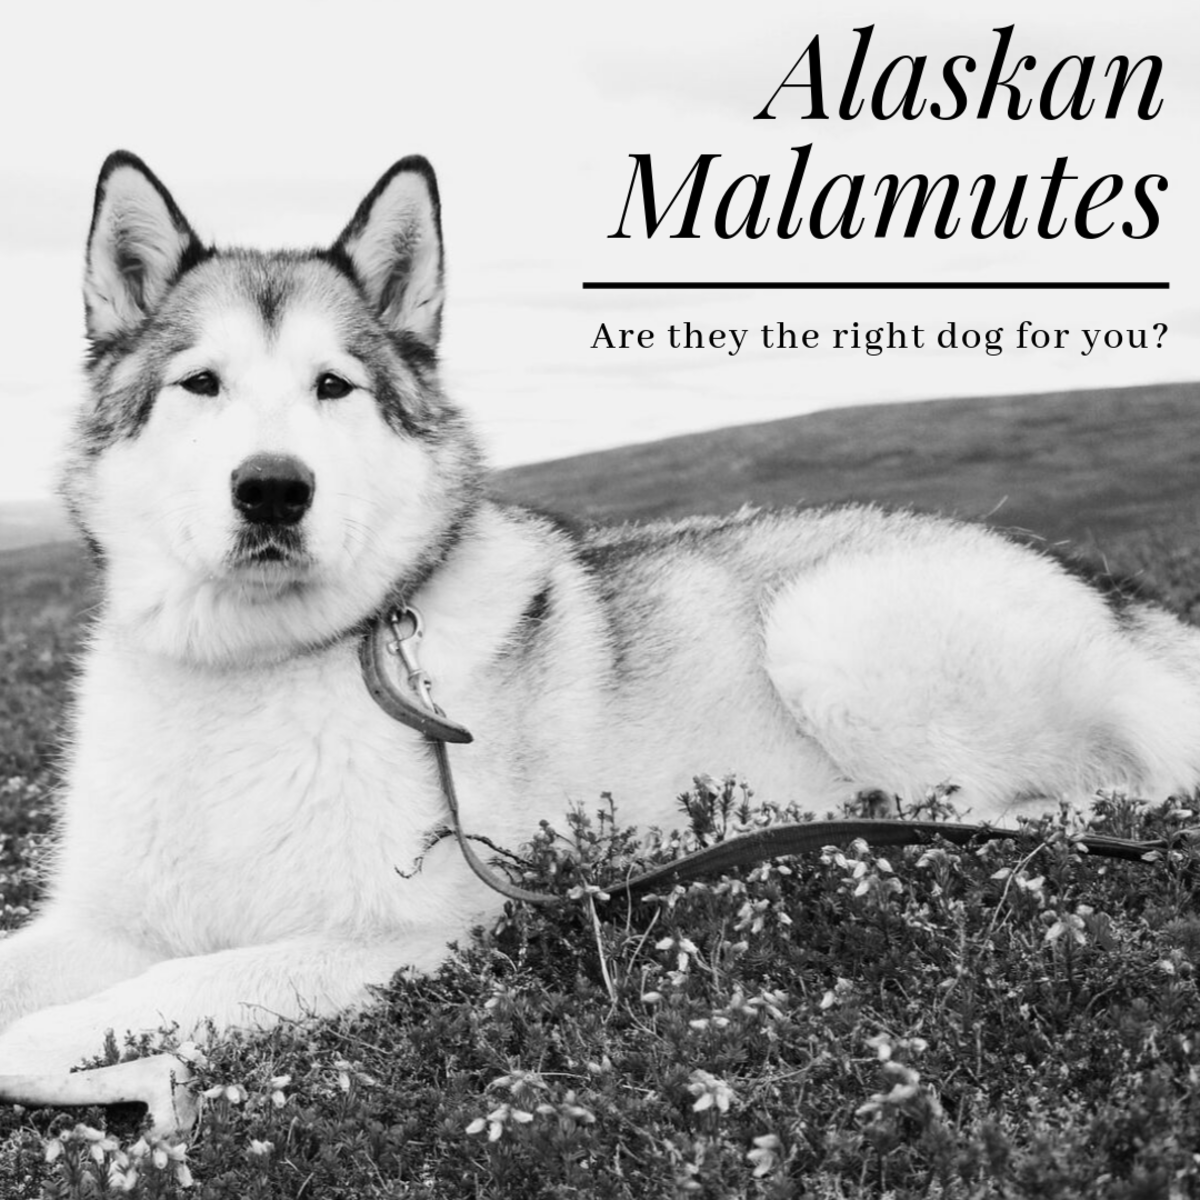 Is an Alaskan Malamute Dog Right for You?